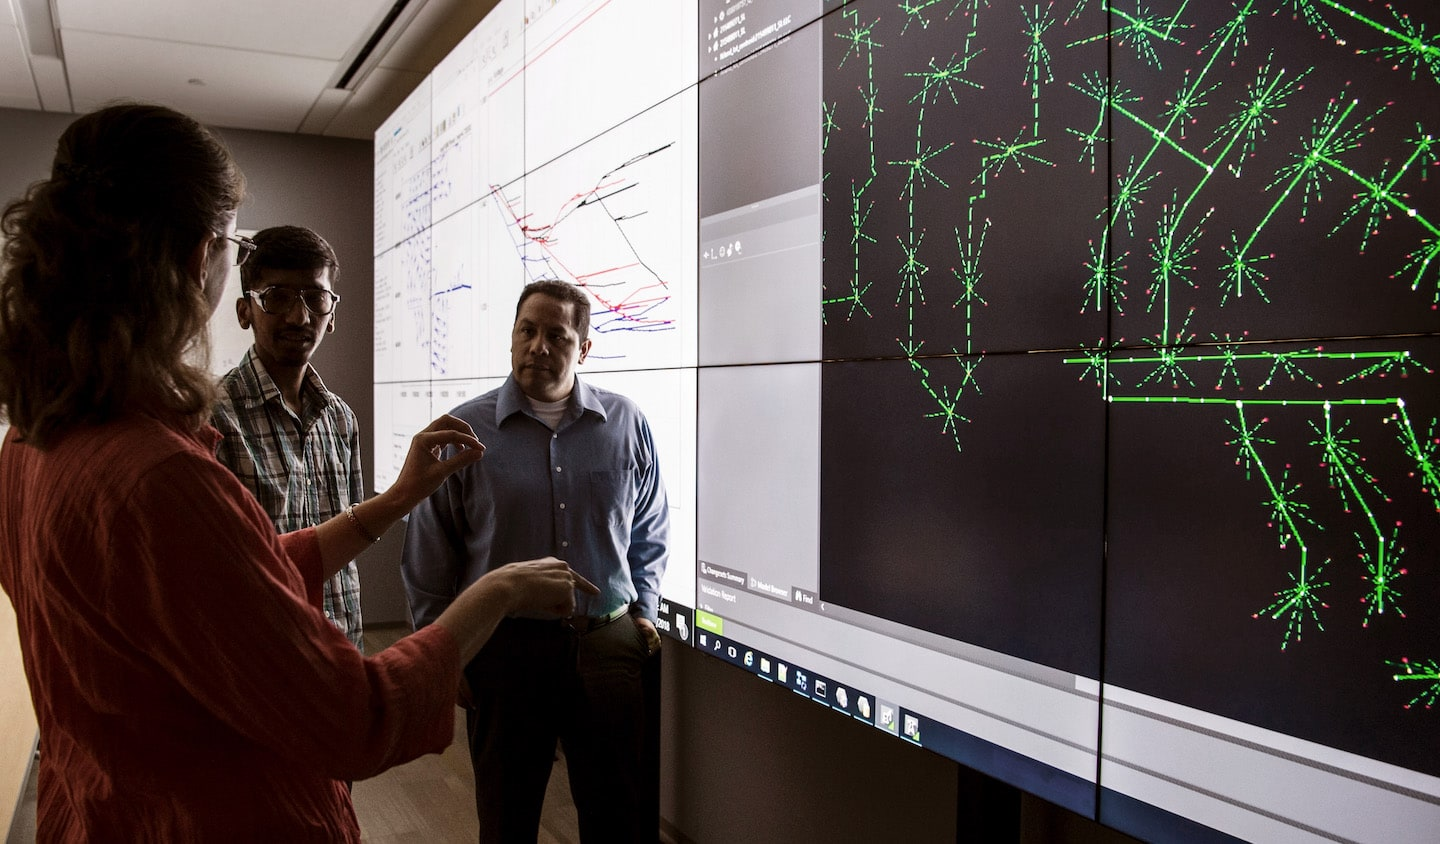 Two people discussing science in front of a screen